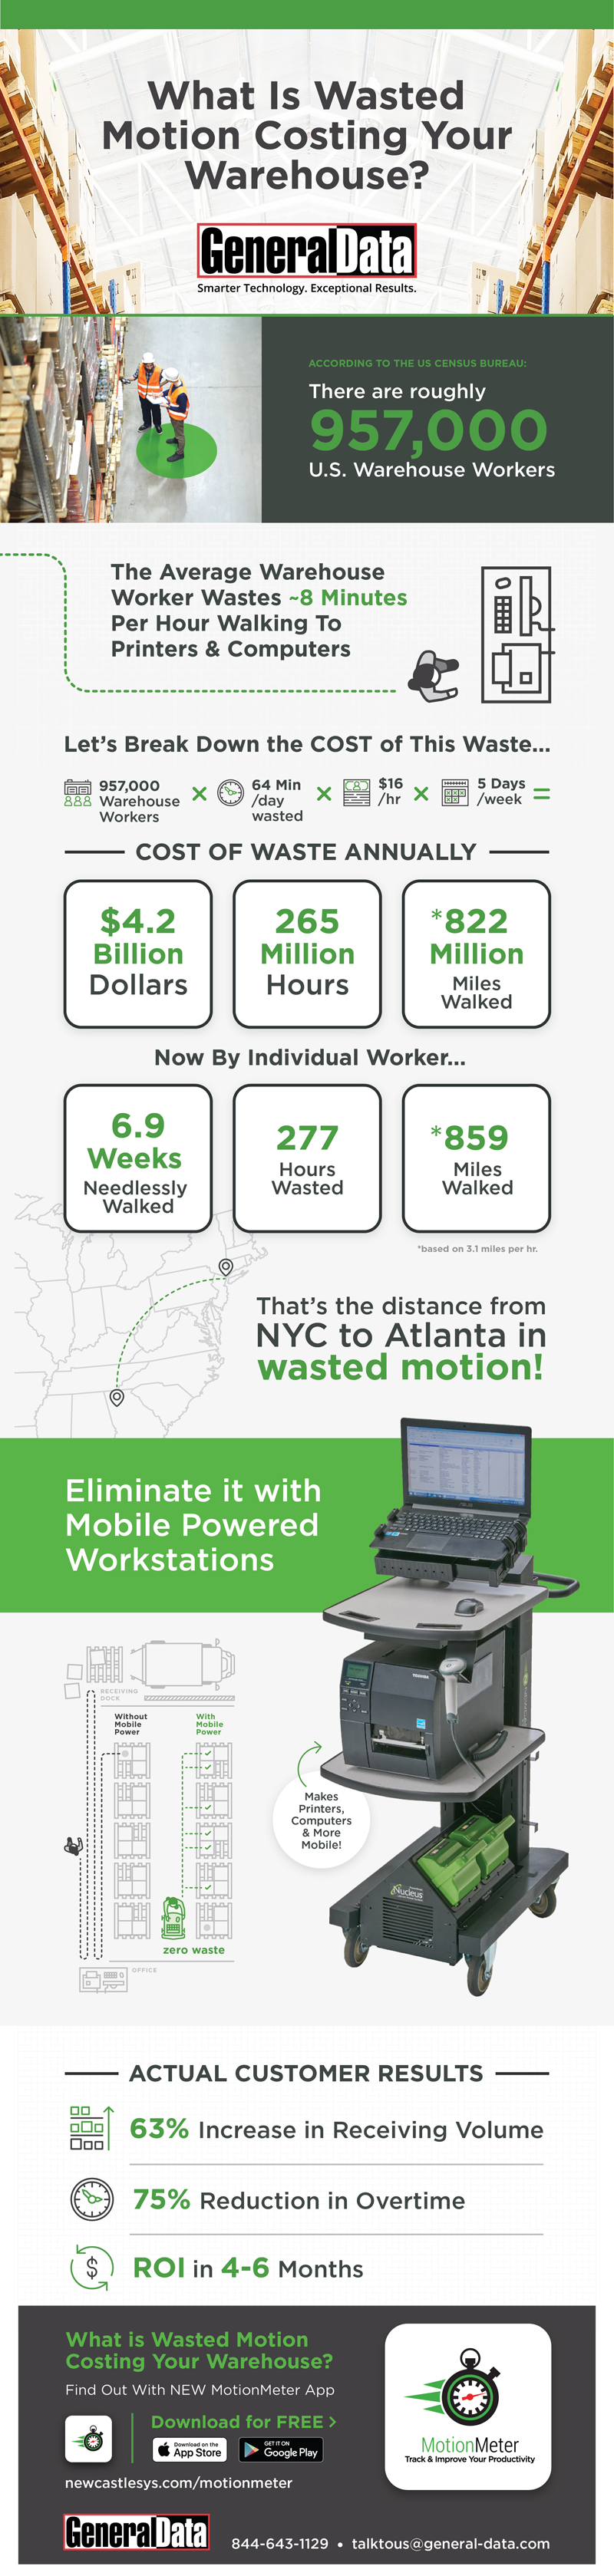 What Is Wasted Motion Costing Your Warehouse?